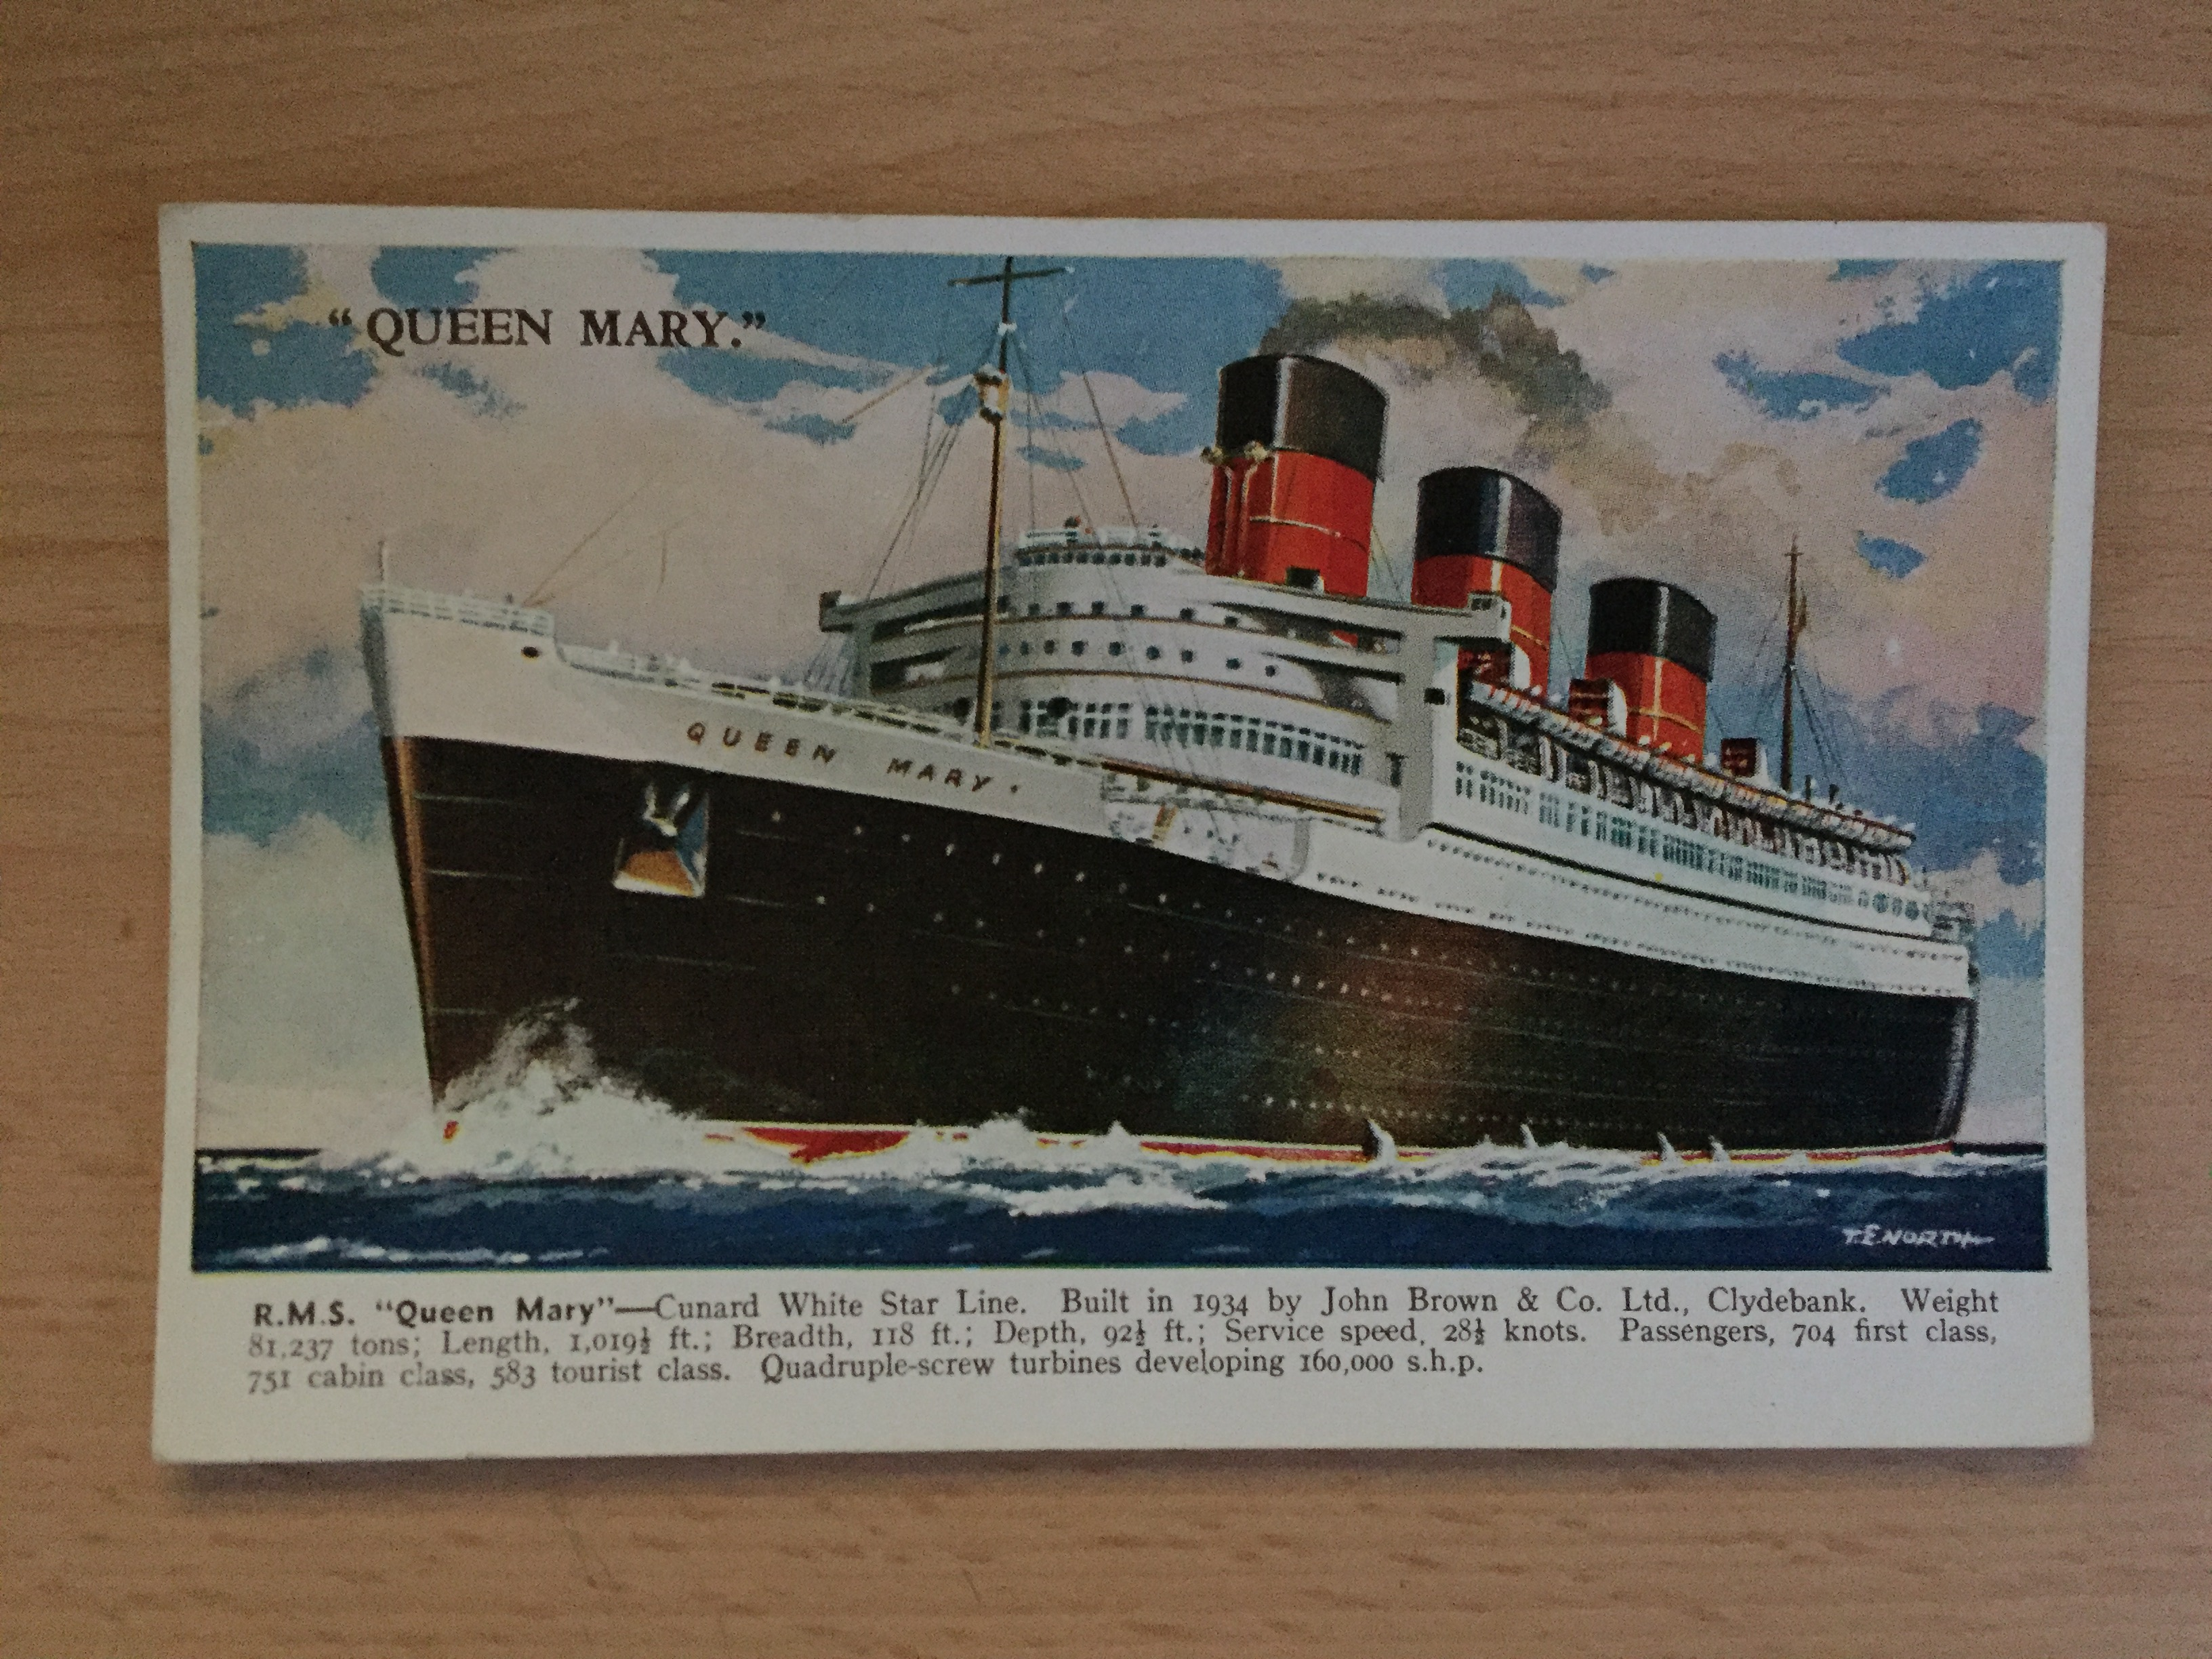 EARLY COLOUR POSTCARD FROM THE CUNARD LINE VESSEL THE RMS QUEEN MARY